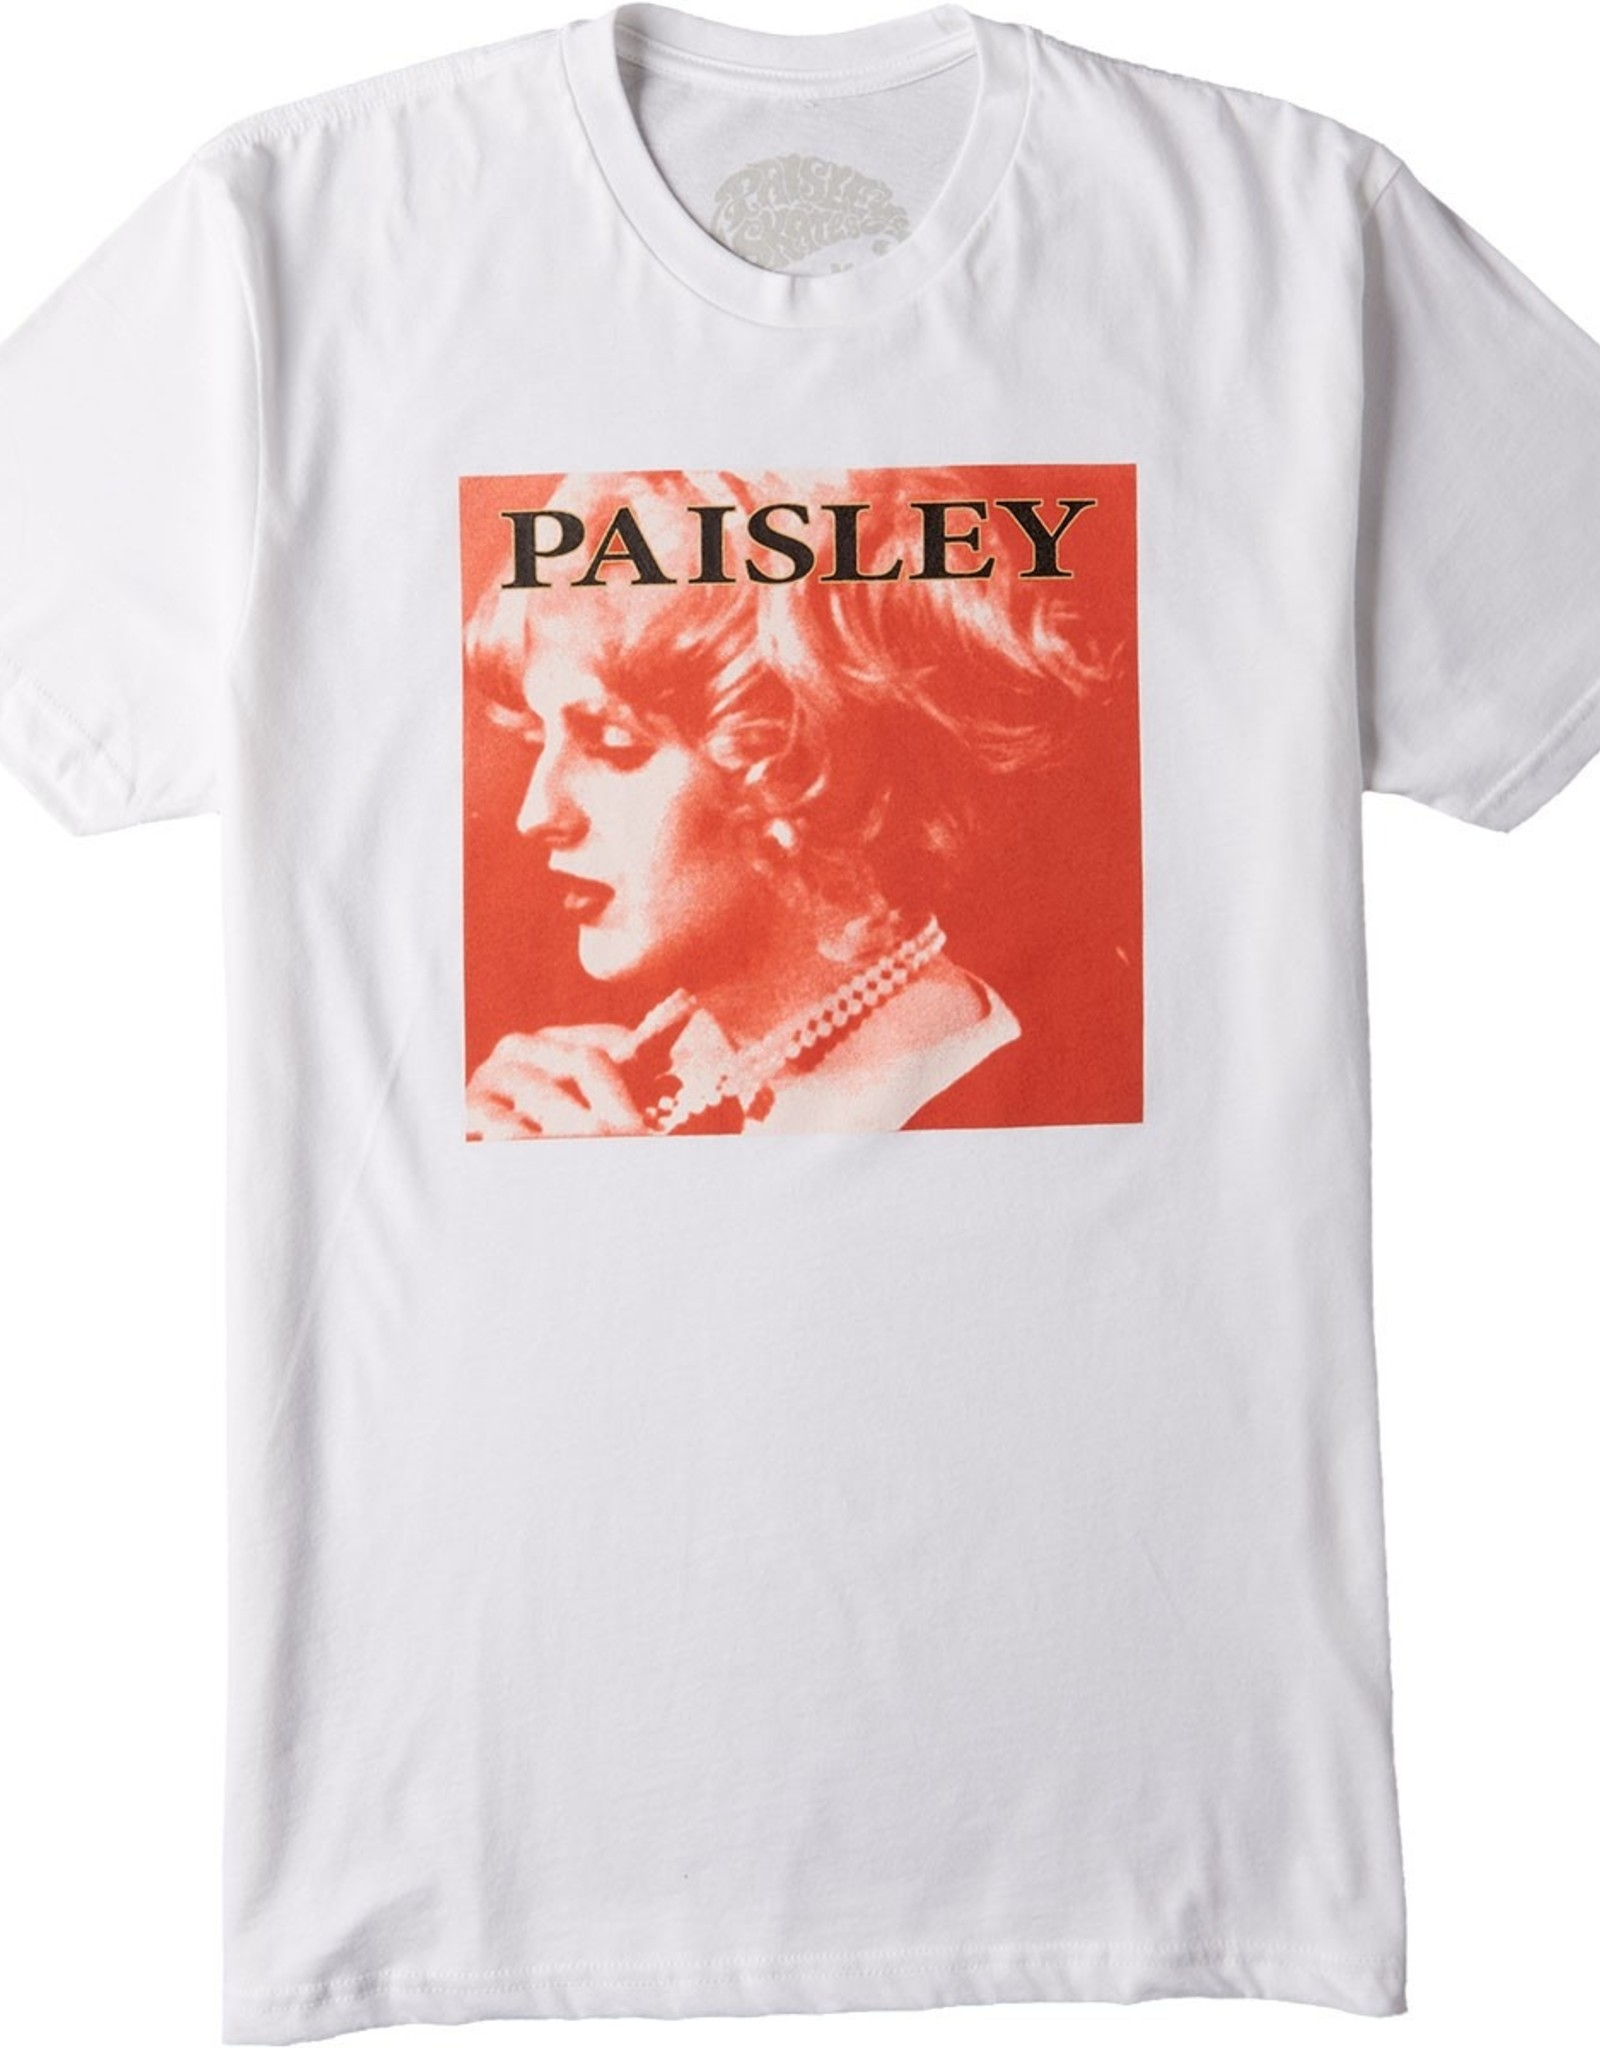 PAISLEY CANDY TEE - WHITE